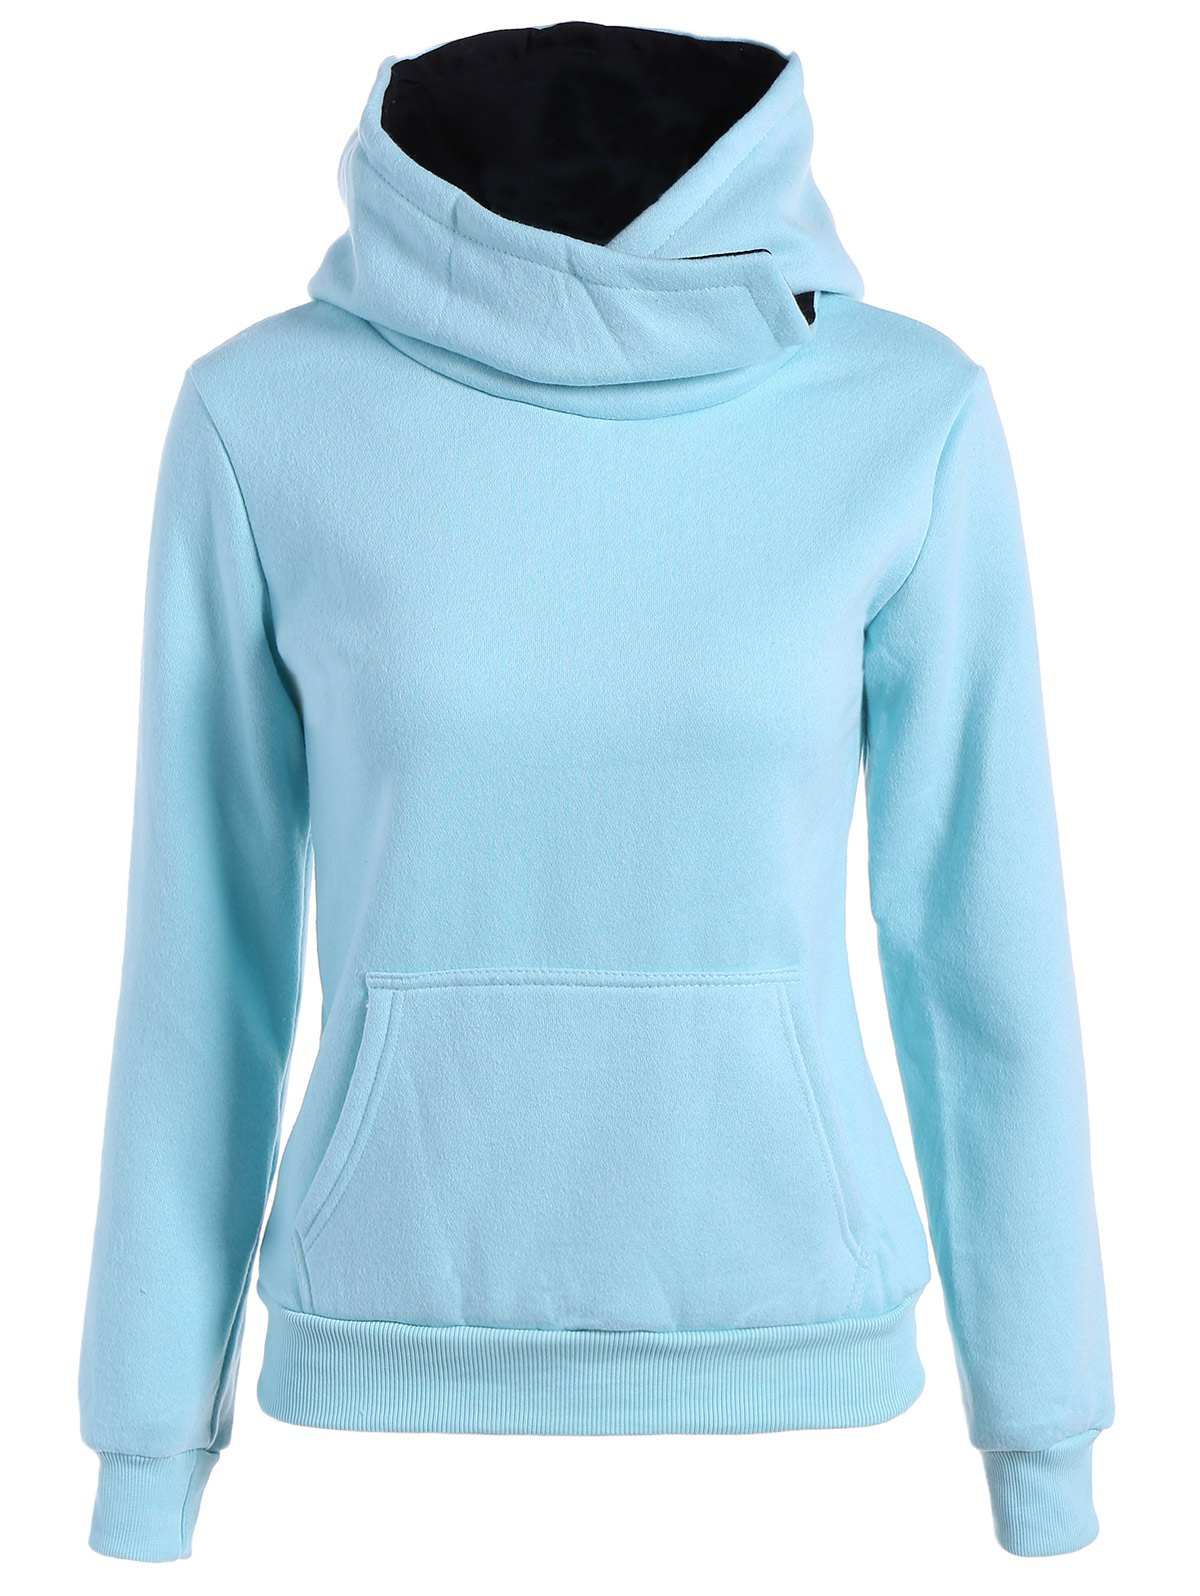 Shops Concise Big Pocket Pullover Hoodie